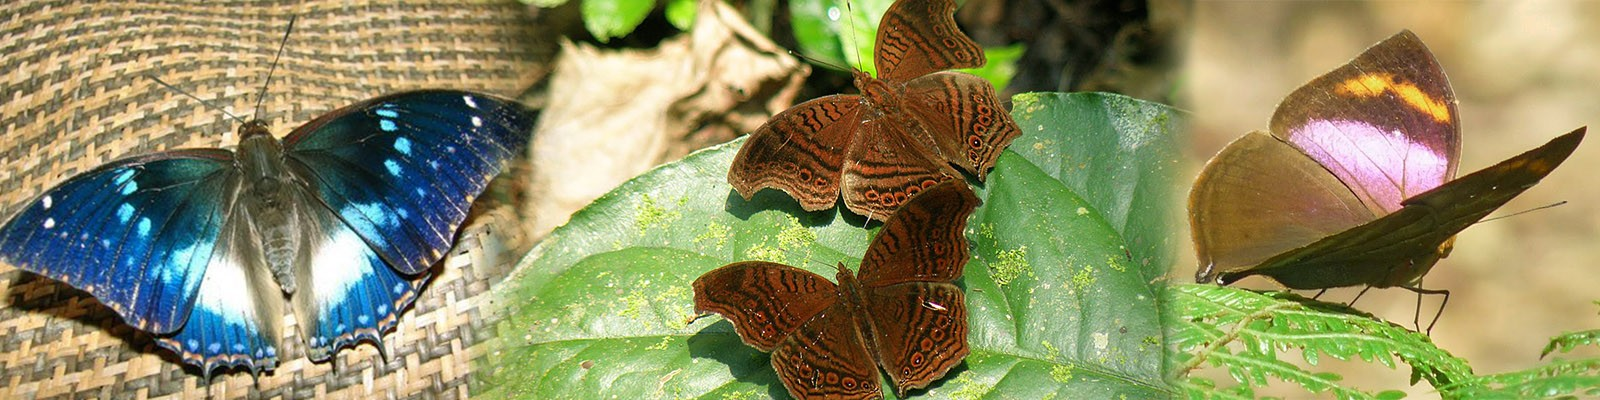 bwindi-impenetrable-forest-national-park-buterflies